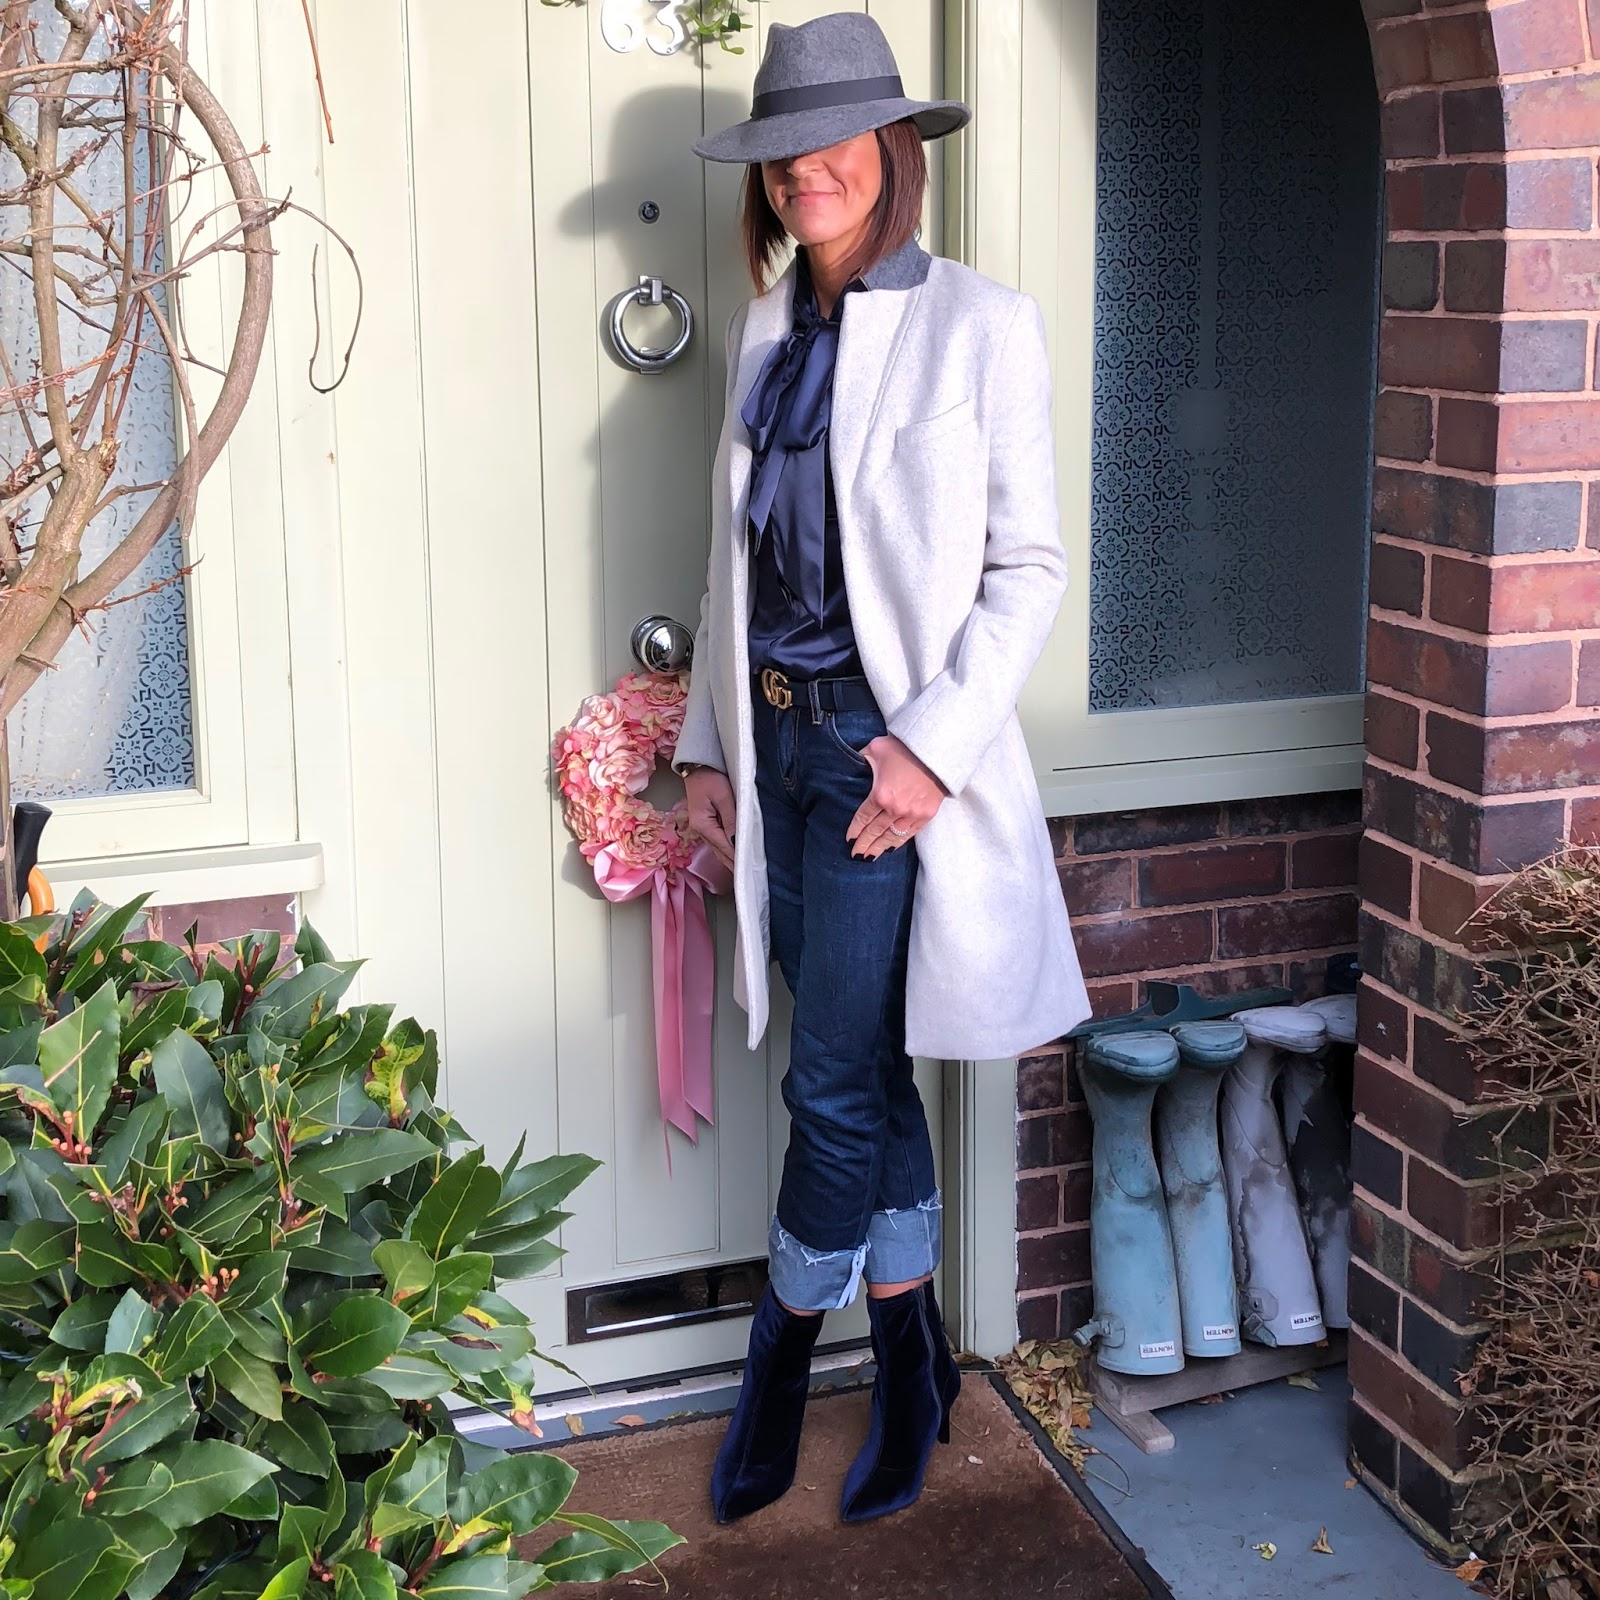 my midlife fashion, hawes & curtis navy fitted luxury satin pussy bow blouse, hush boyfriend turn up jeans, great plains nipper wool coat, gucci leather belt, marks and spencer stiletto heel size zip ankle boots, zara felt fedora hat